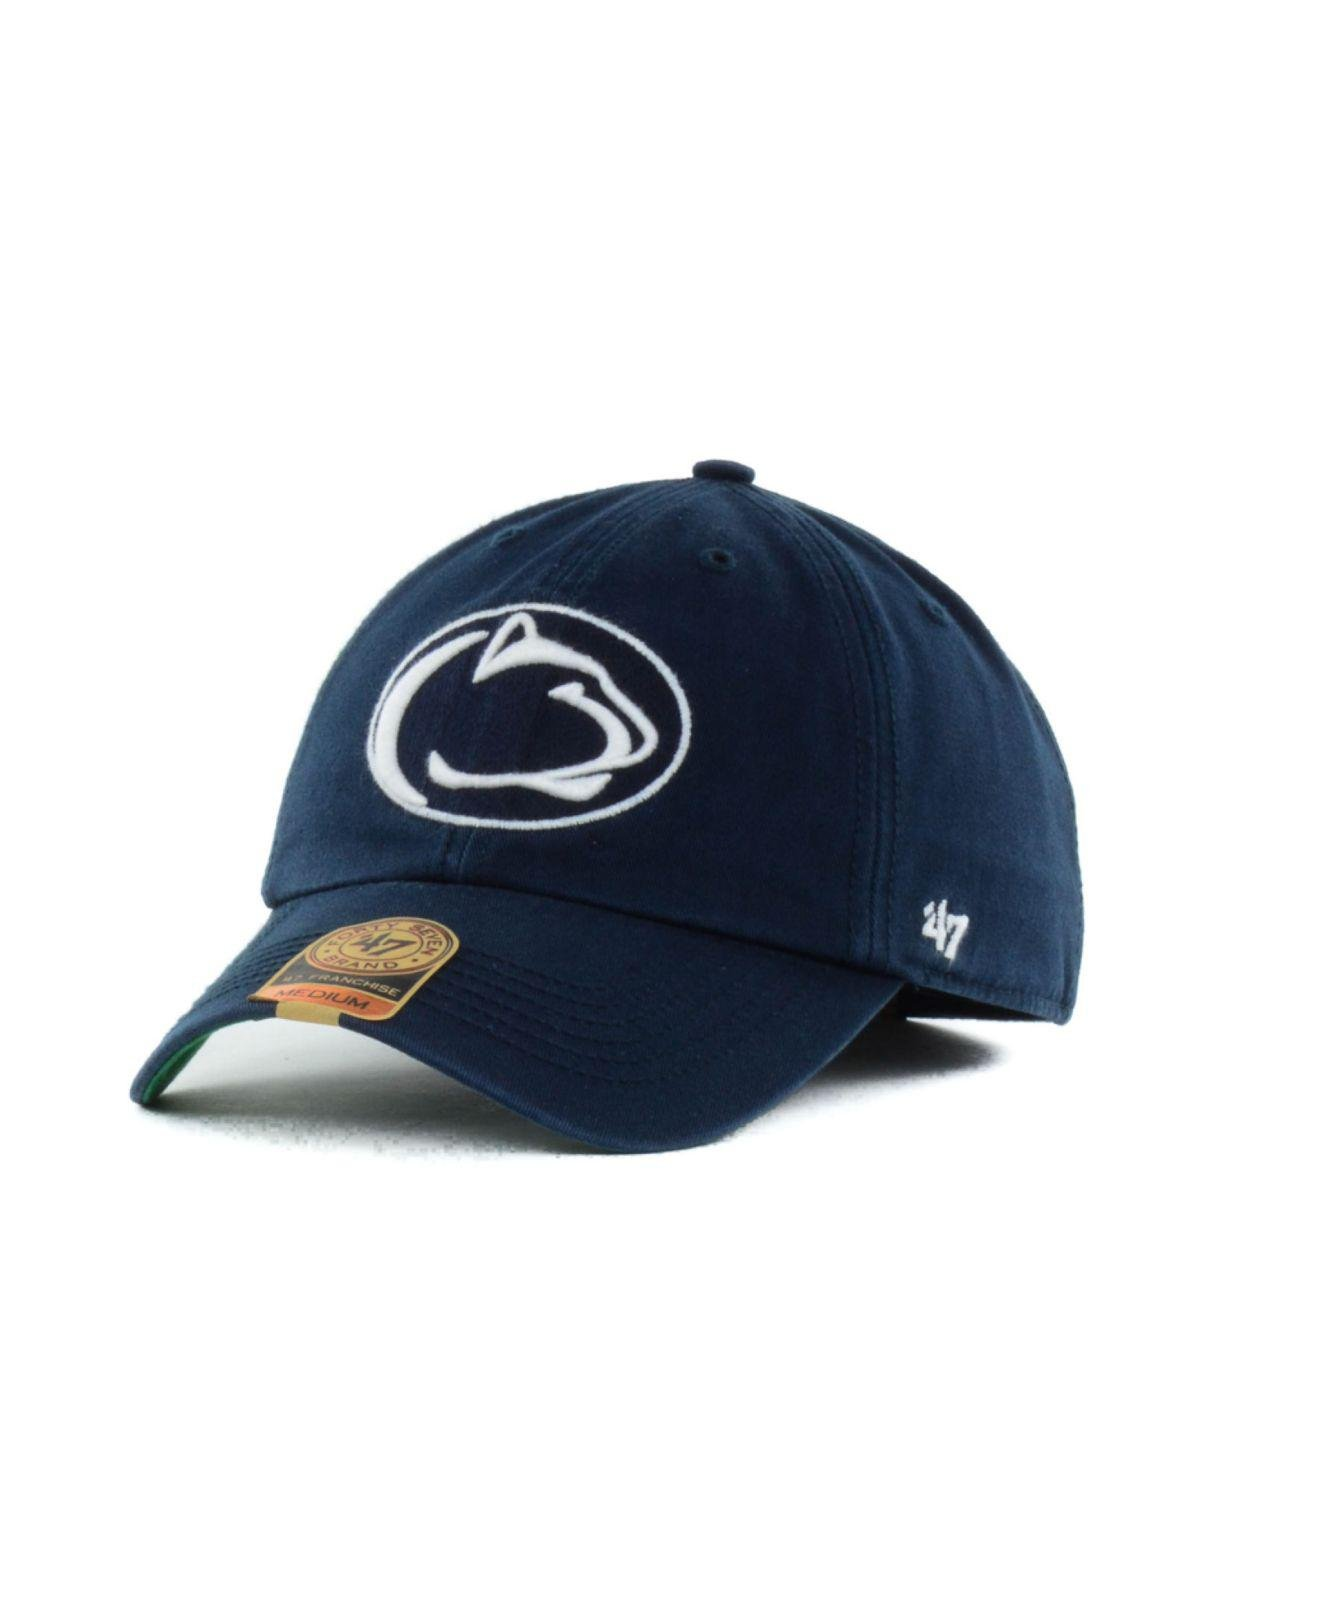 d5fdb53b0519d Lyst - 47 Brand Penn State Nittany Lions Ncaa  47 Franchise Cap in ...